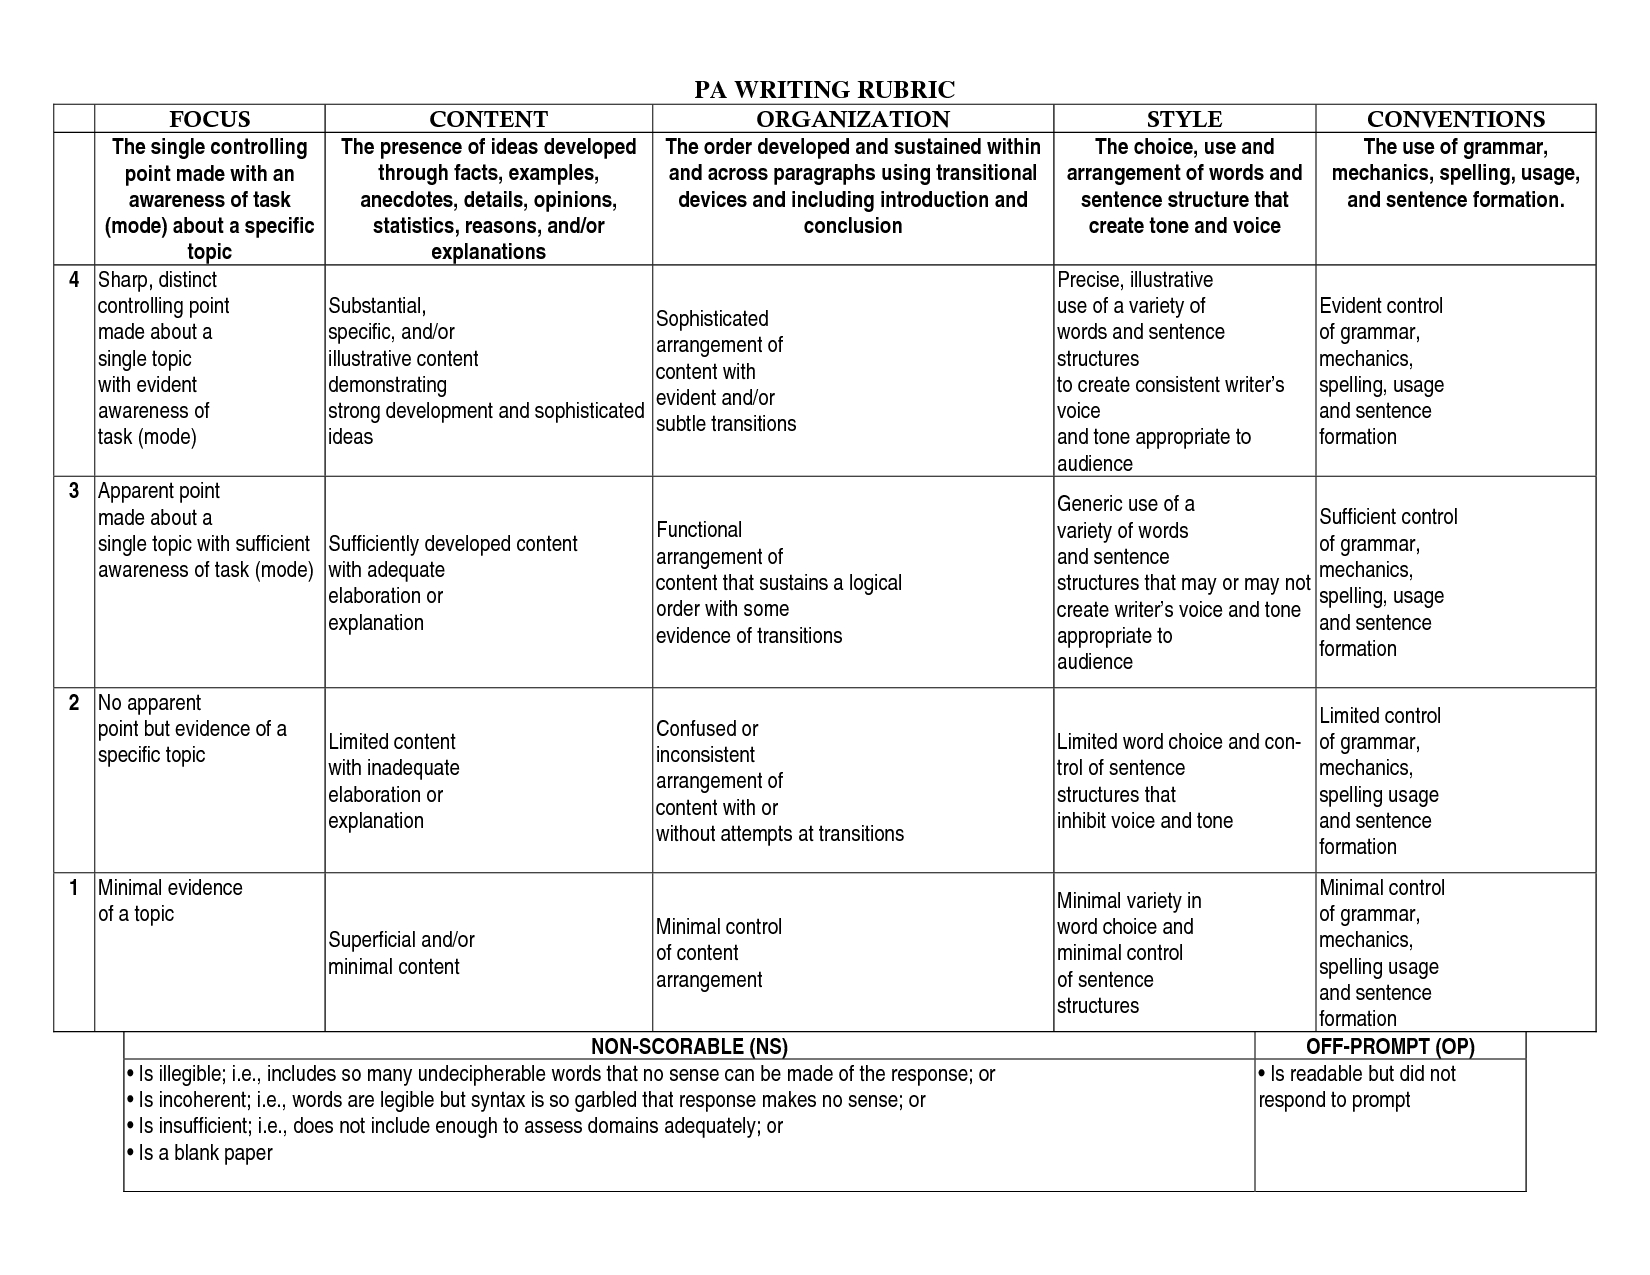 Art Rubrics Elementary Grade Level | Pa Writing Rubric | Rubric - Free Printable Art Rubrics